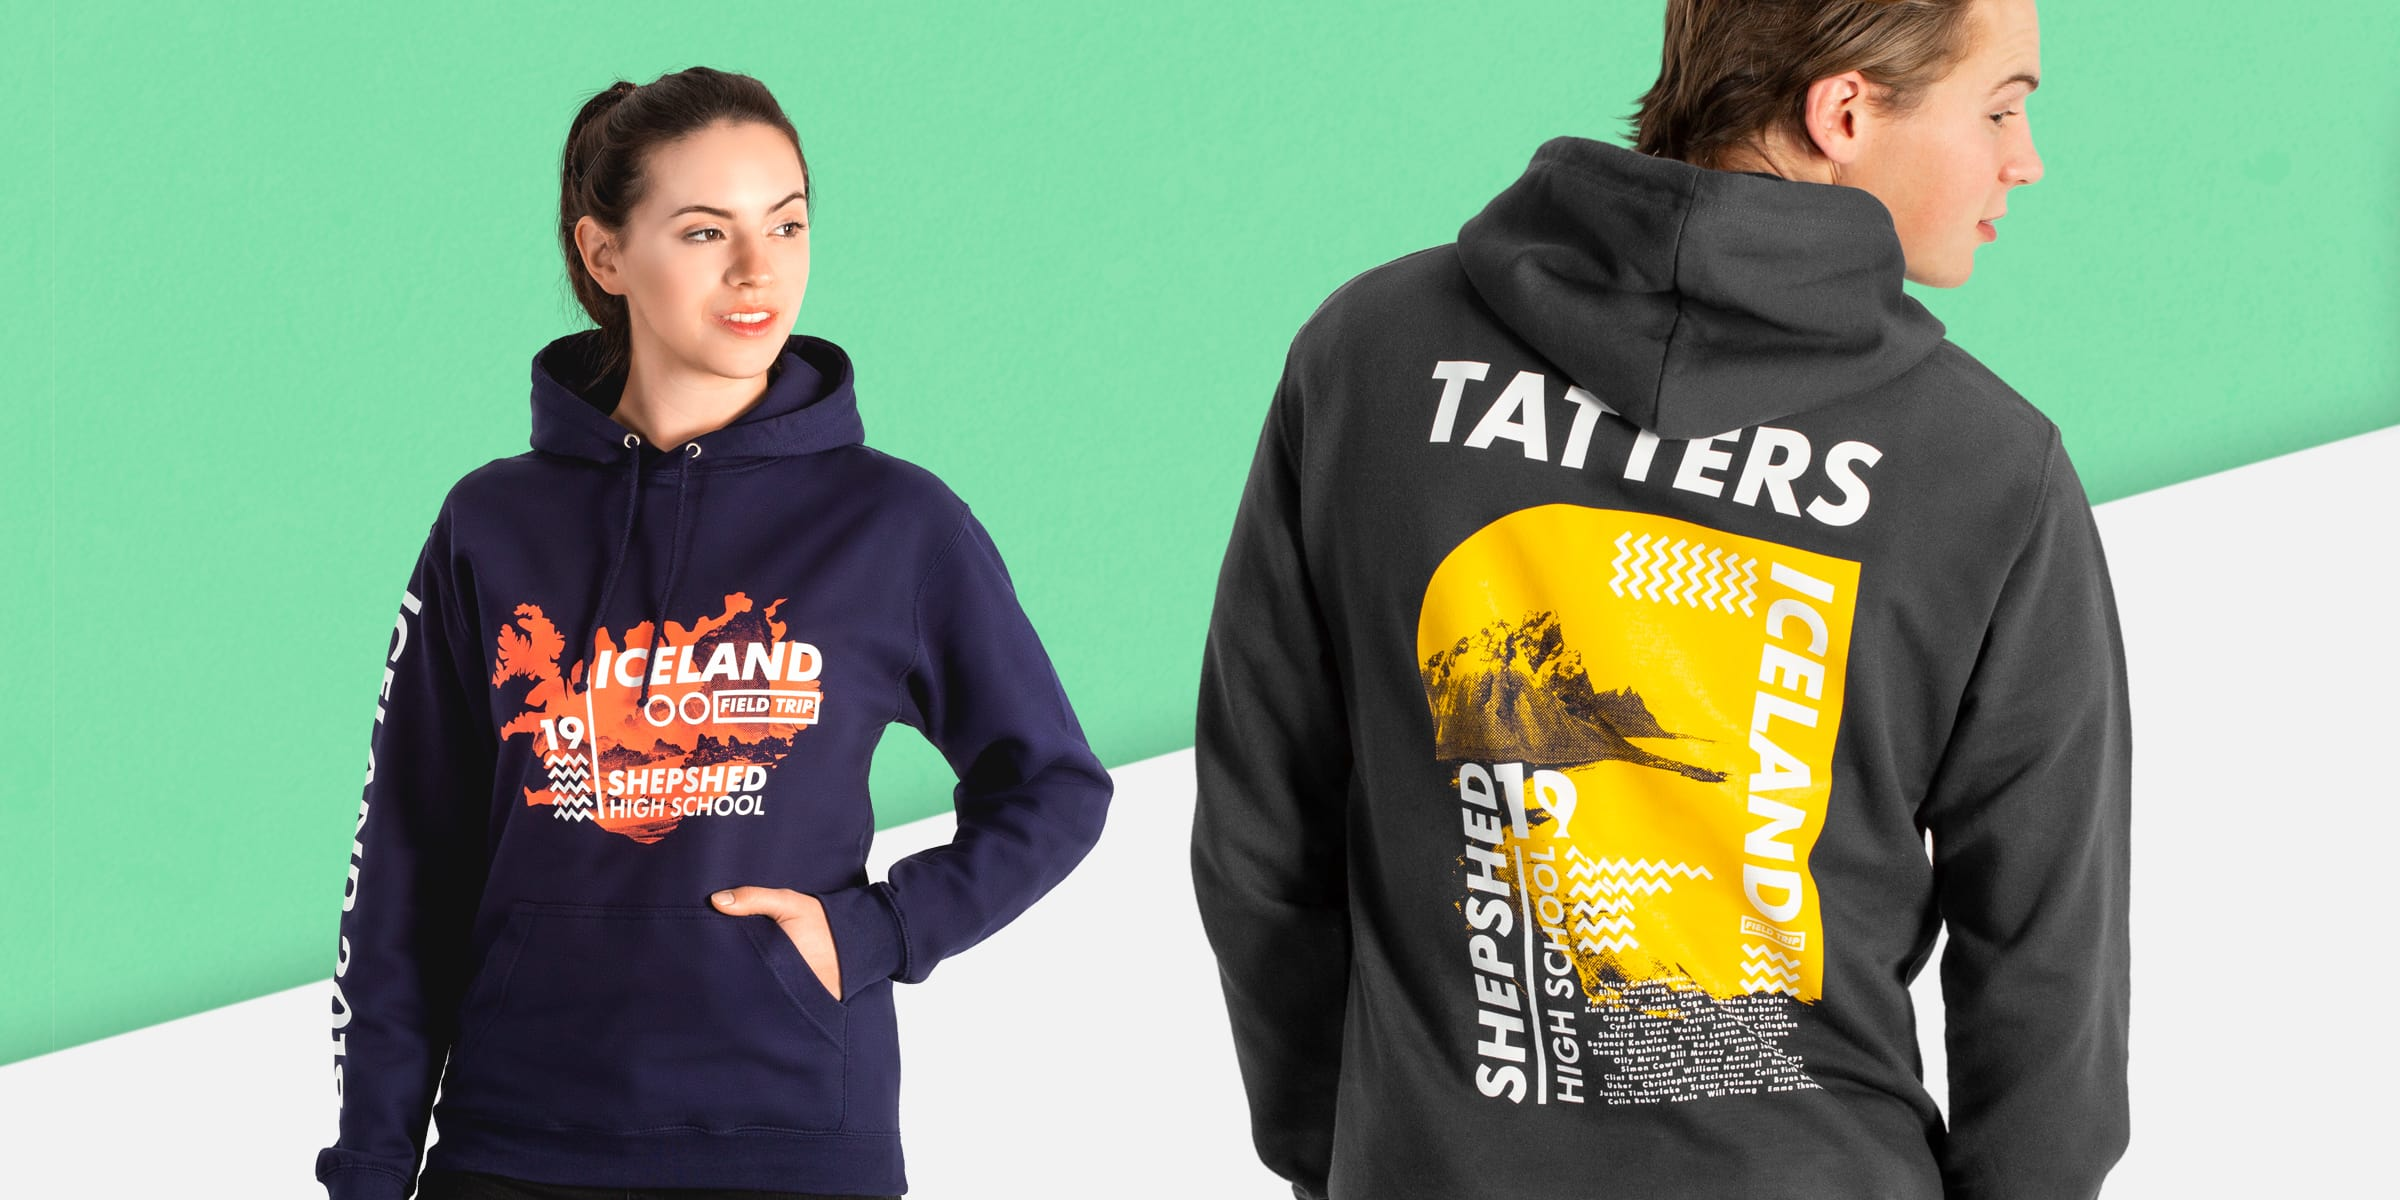 School trip hoodies with custom logos, maps, destinations and names.